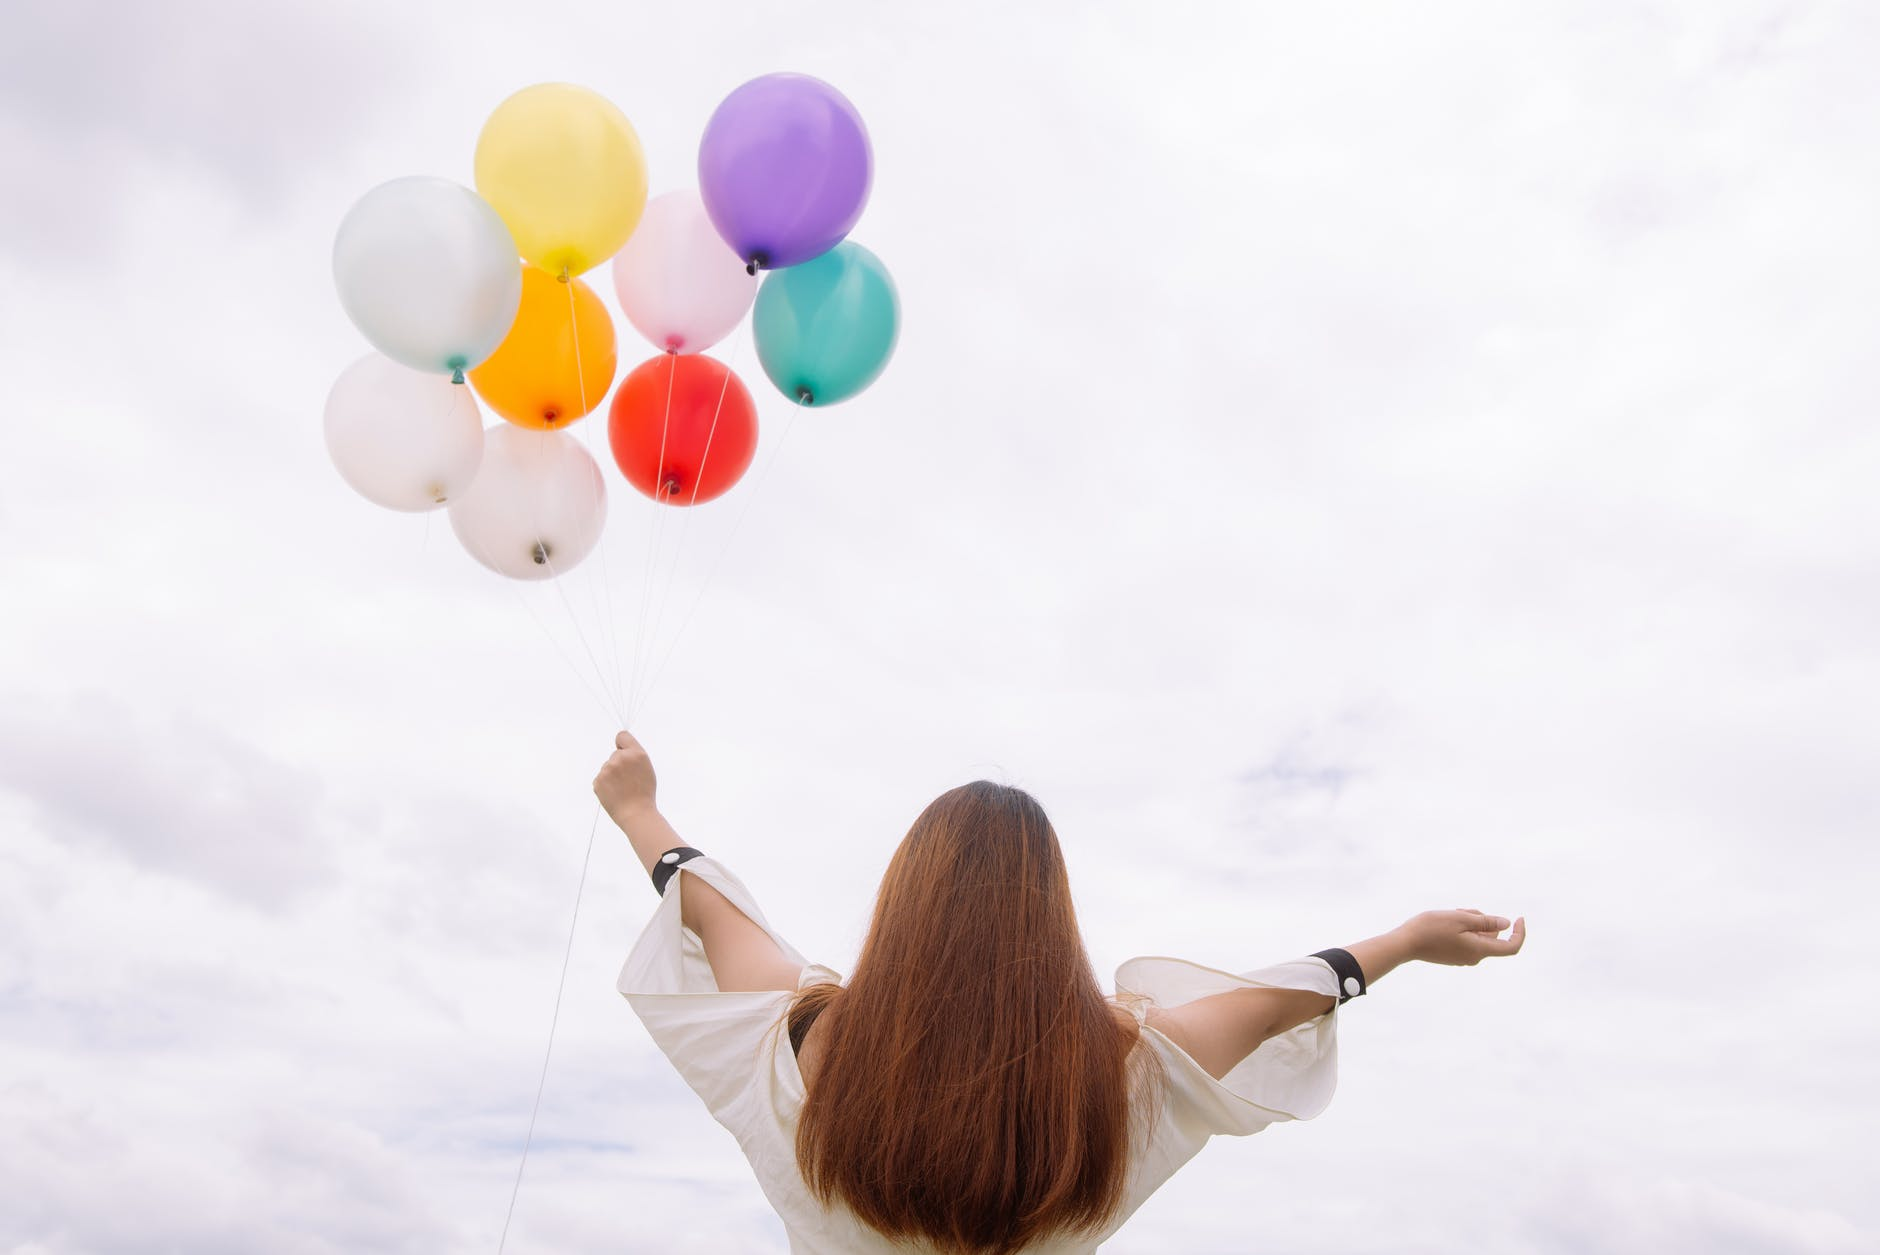 worm s eye view of woman holding balloons